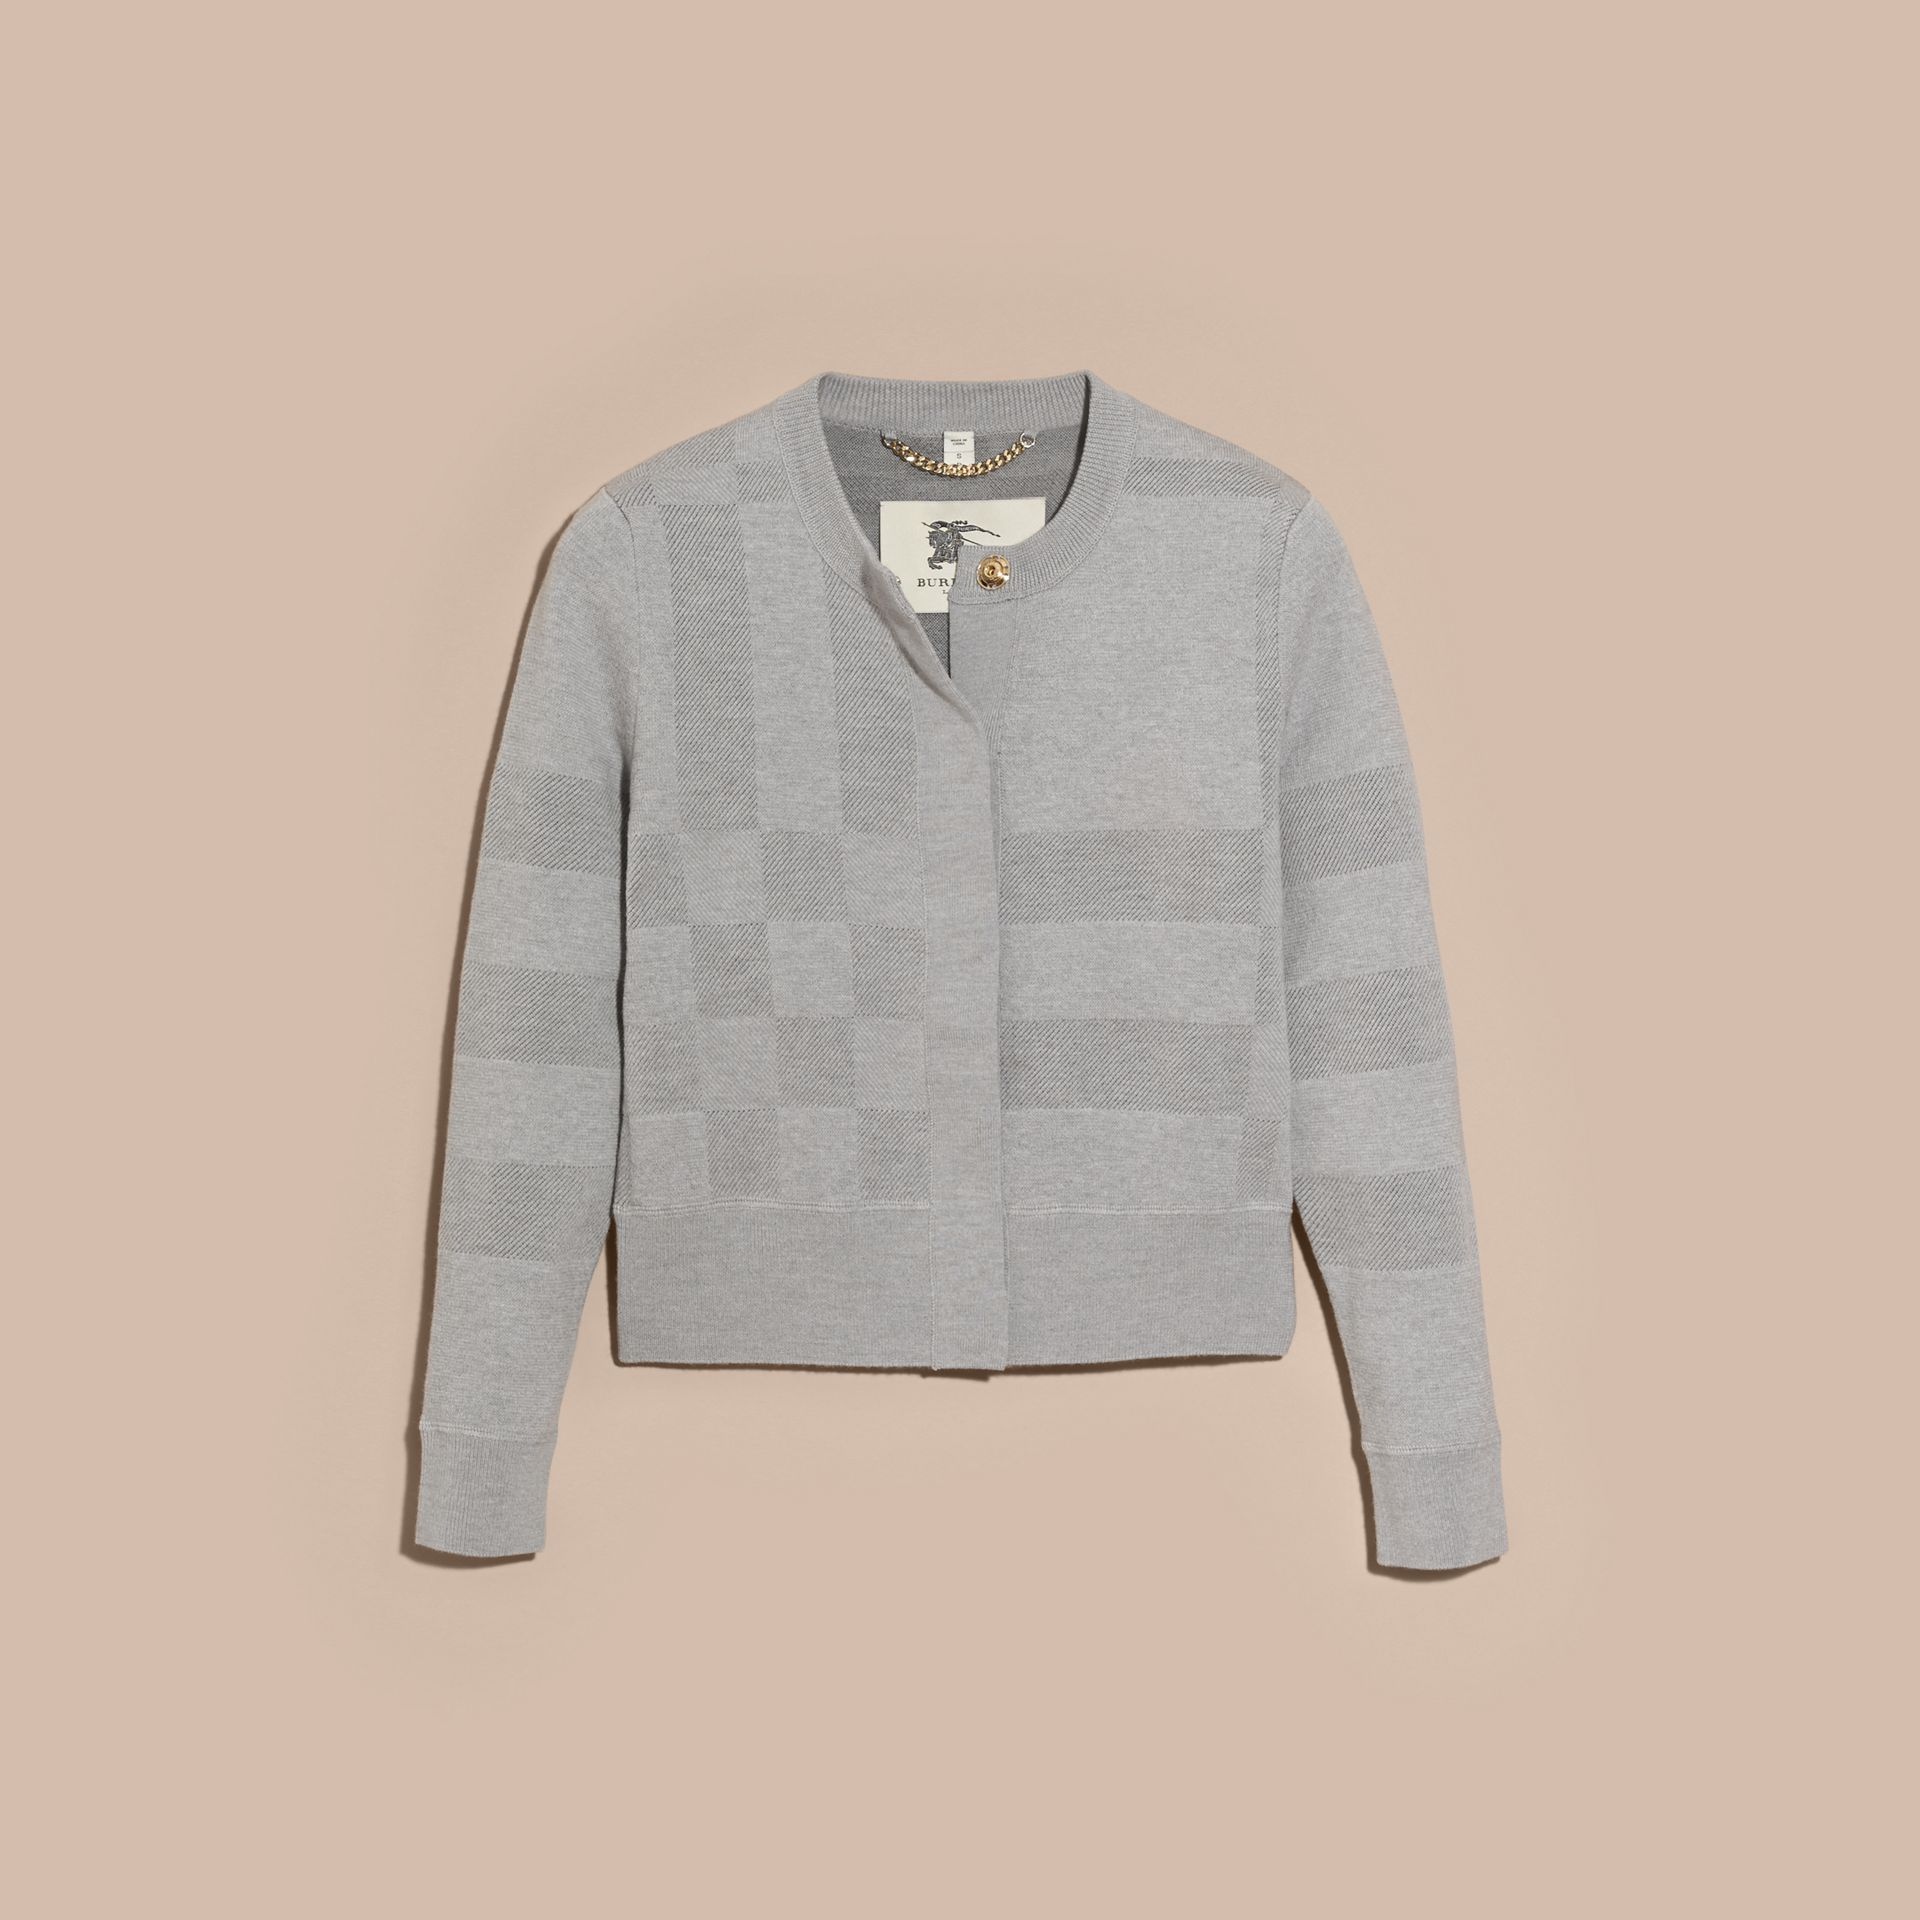 Mid grey melange Check Knit Wool Blend Cardigan - gallery image 3